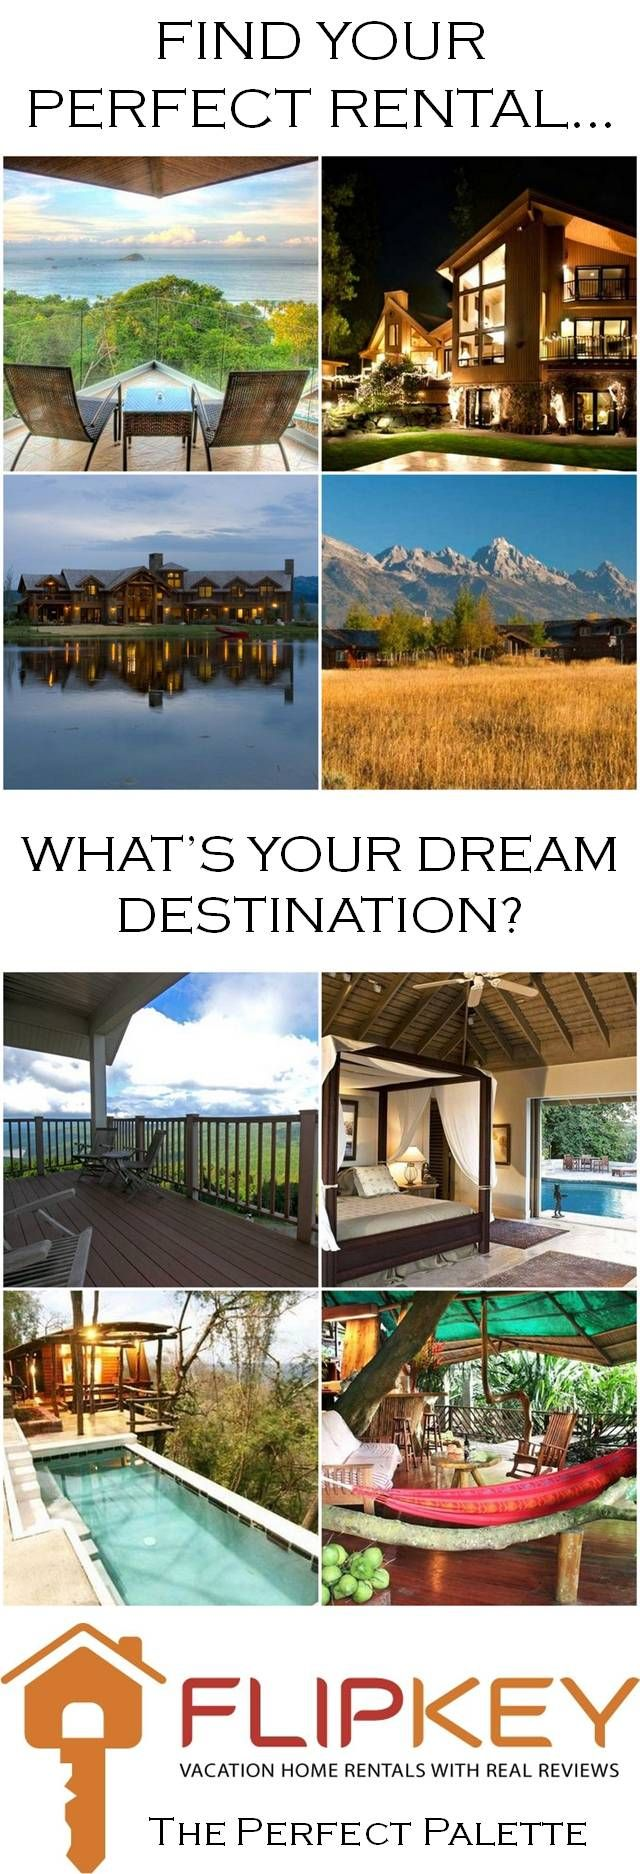 Find the perfect rental for your next vacation, destination wedding or honeymoon! So many beautiful locations to choose from!